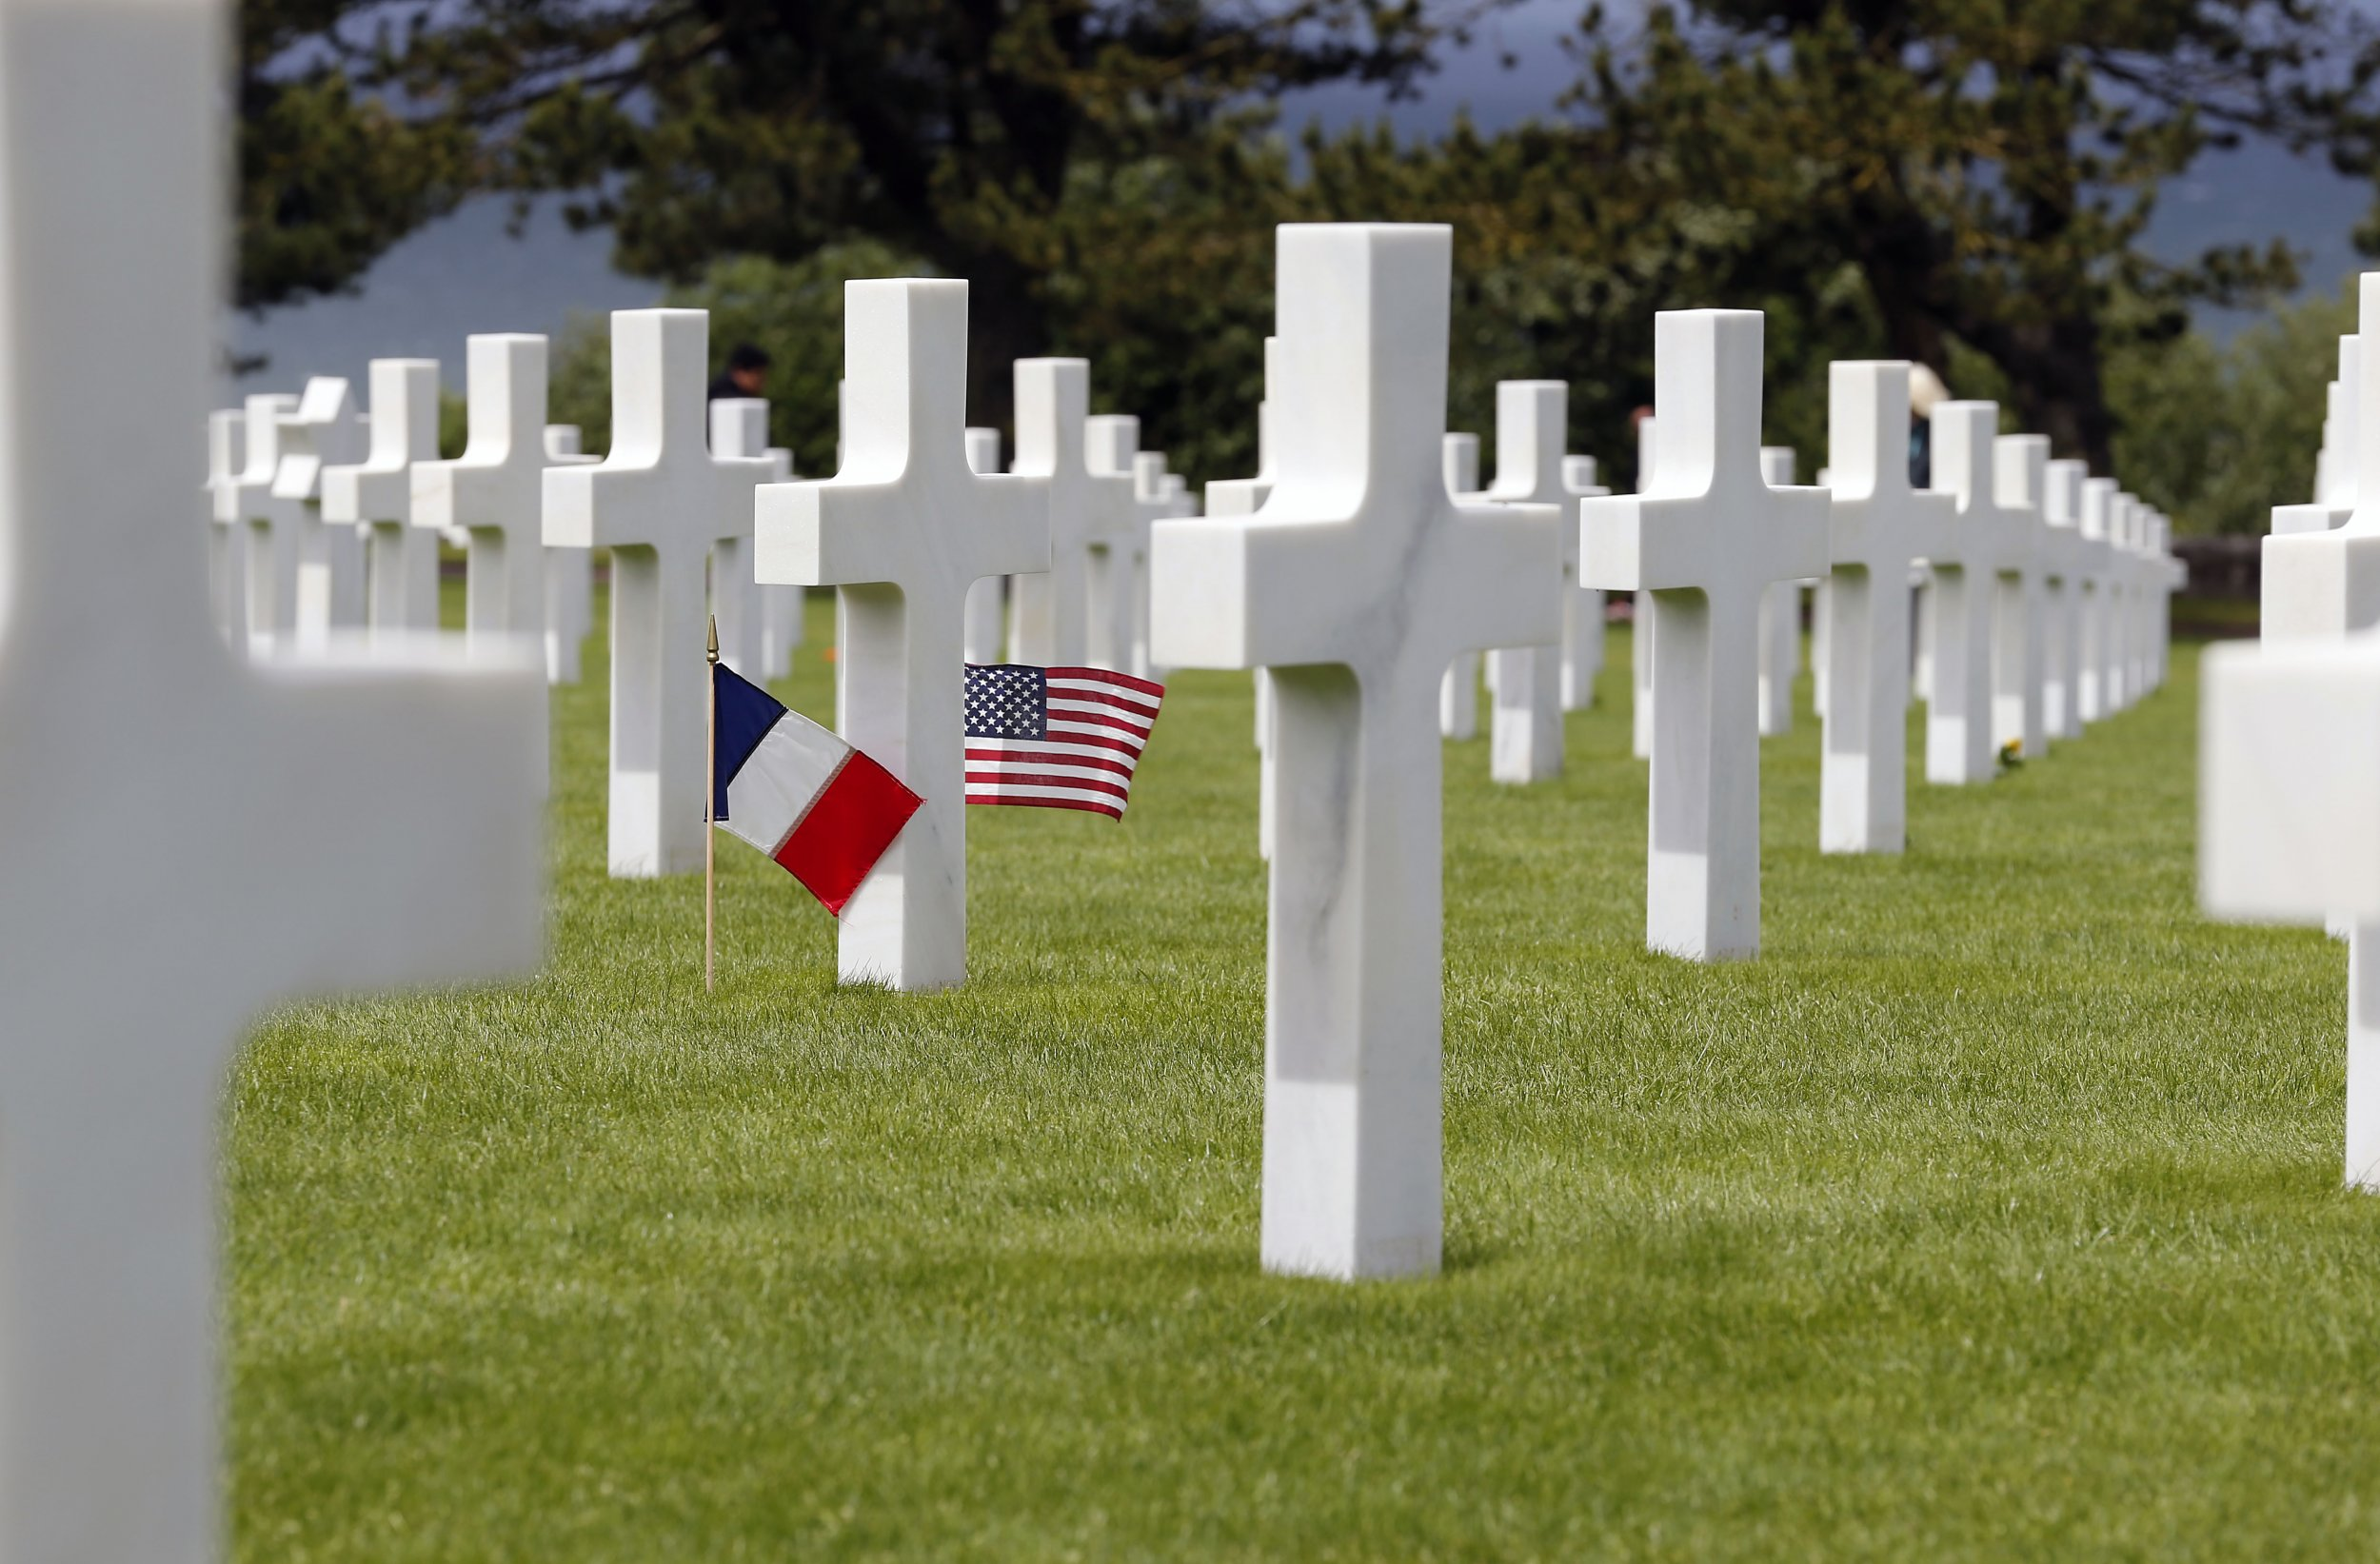 d-day remembrance 75th anniversary world war II normanday casualties facts why is it called d-day